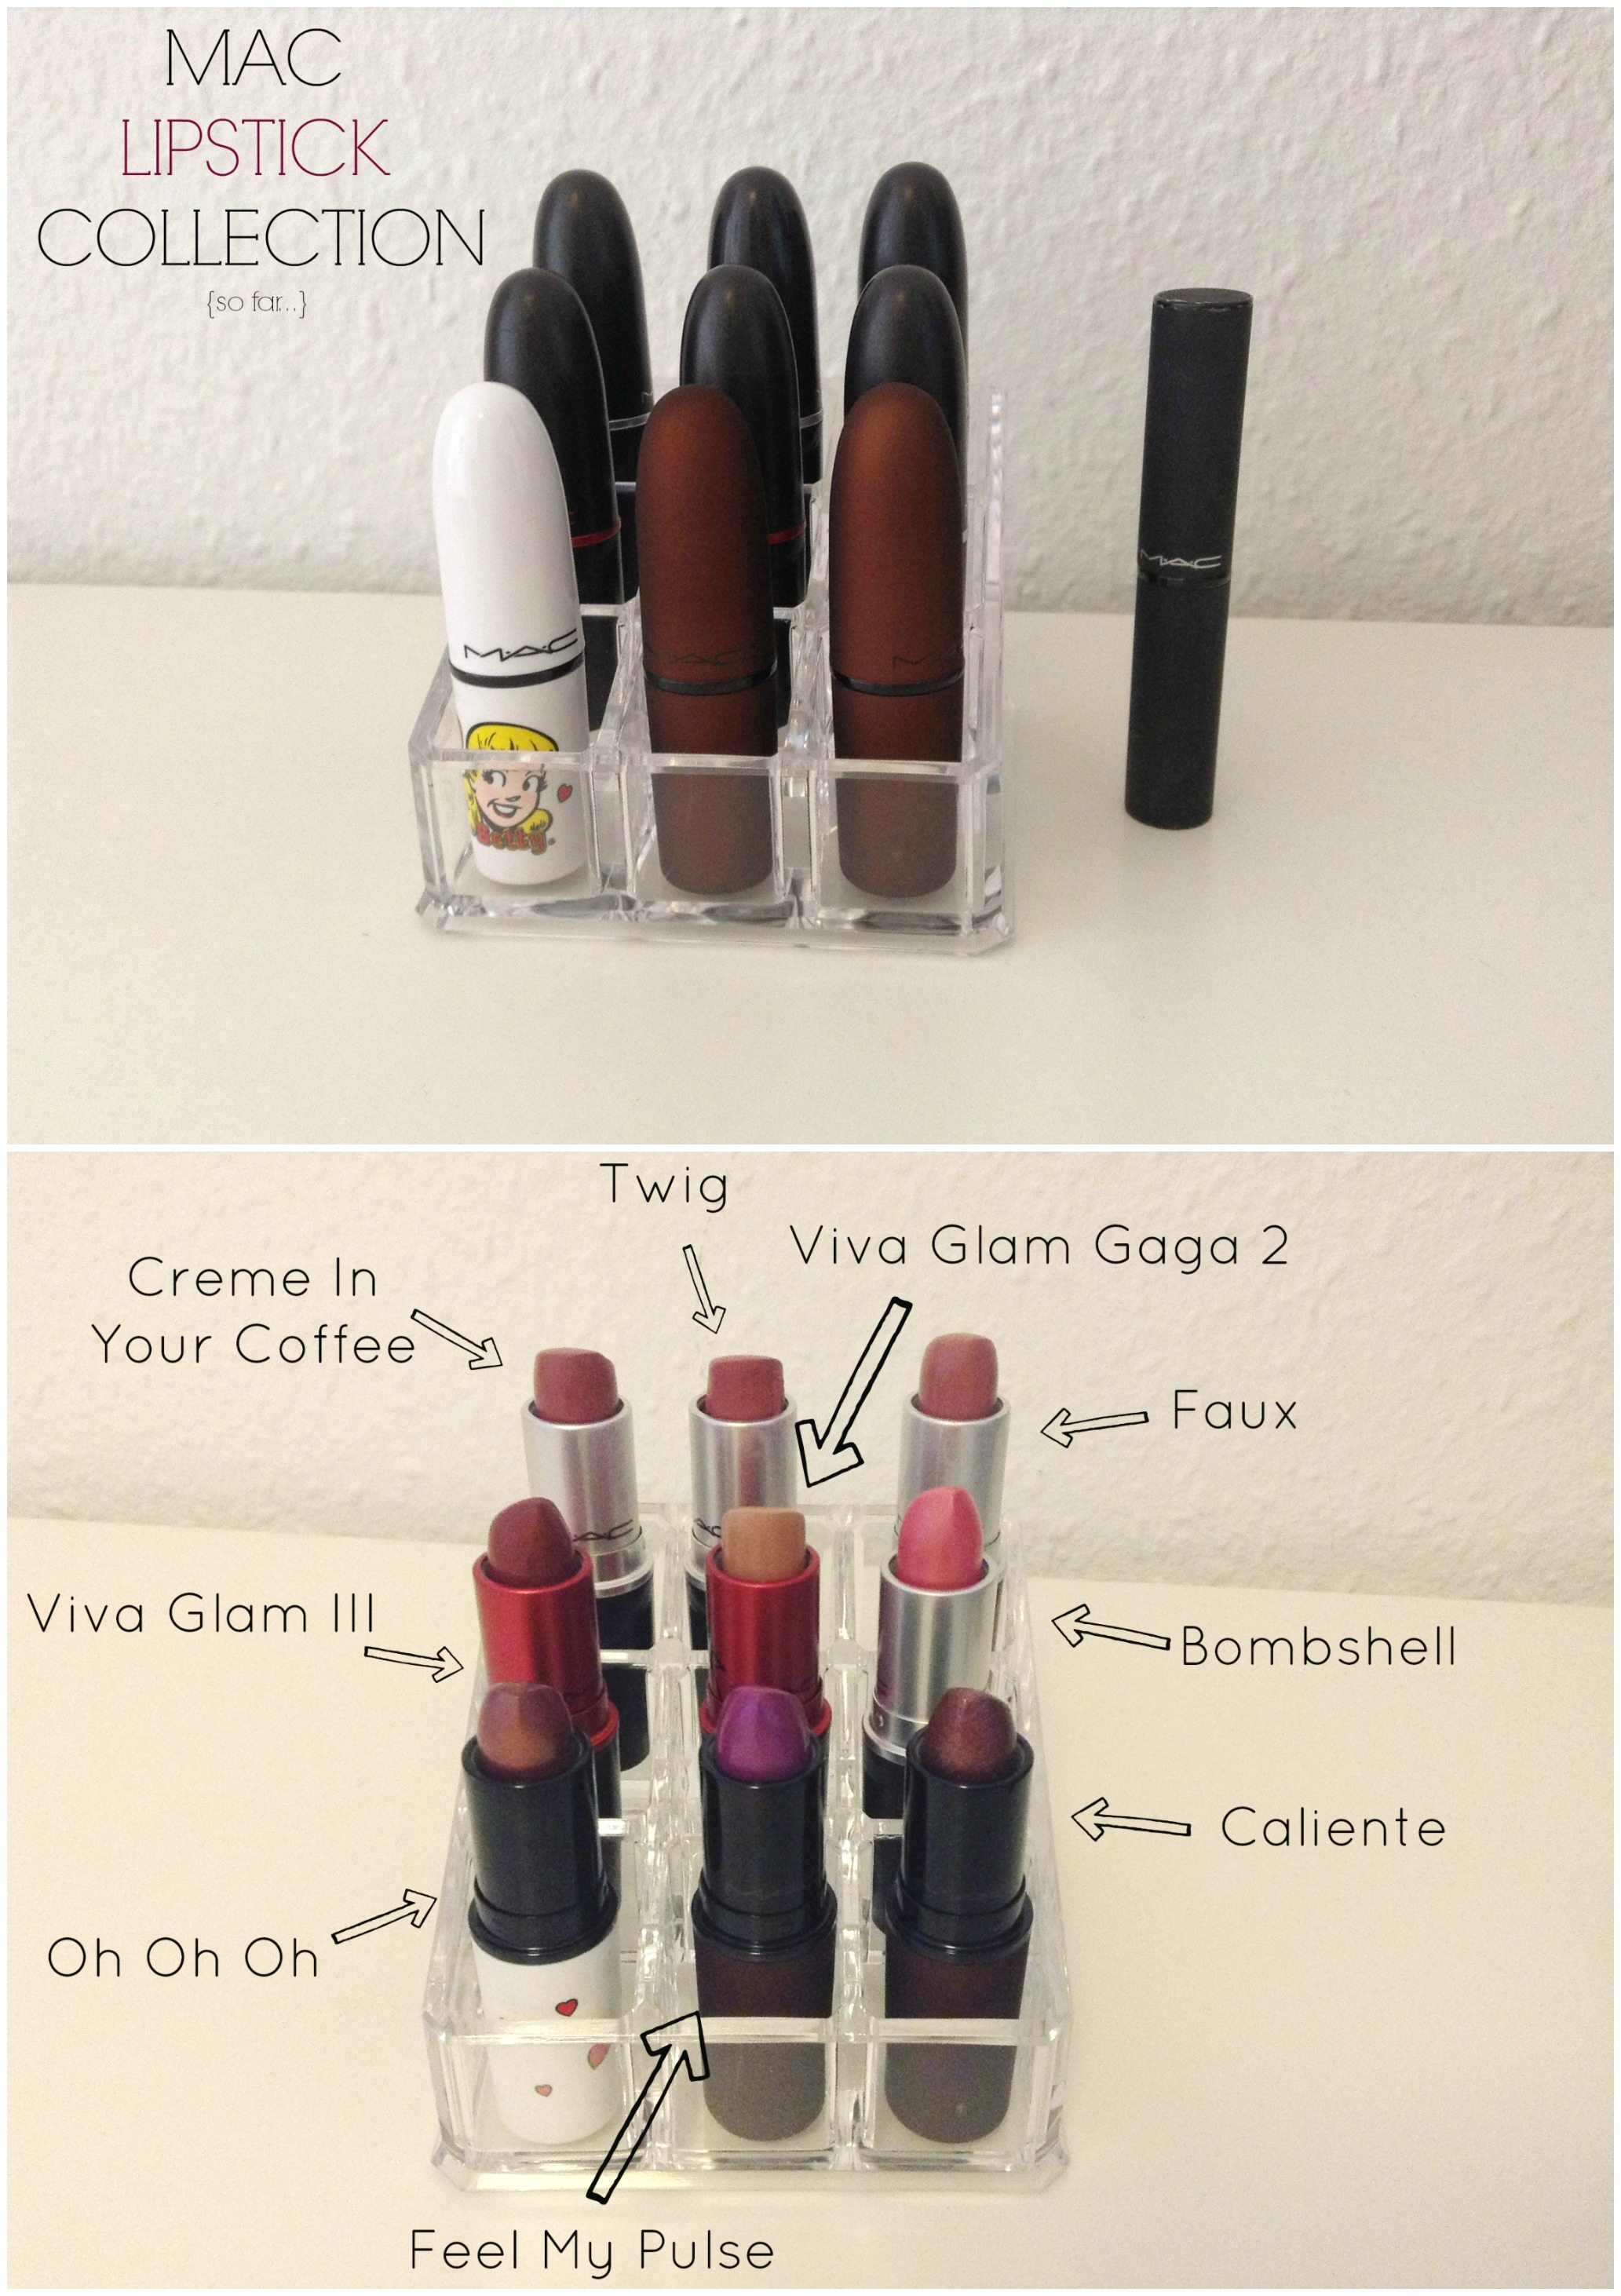 lipstickcollectionmac